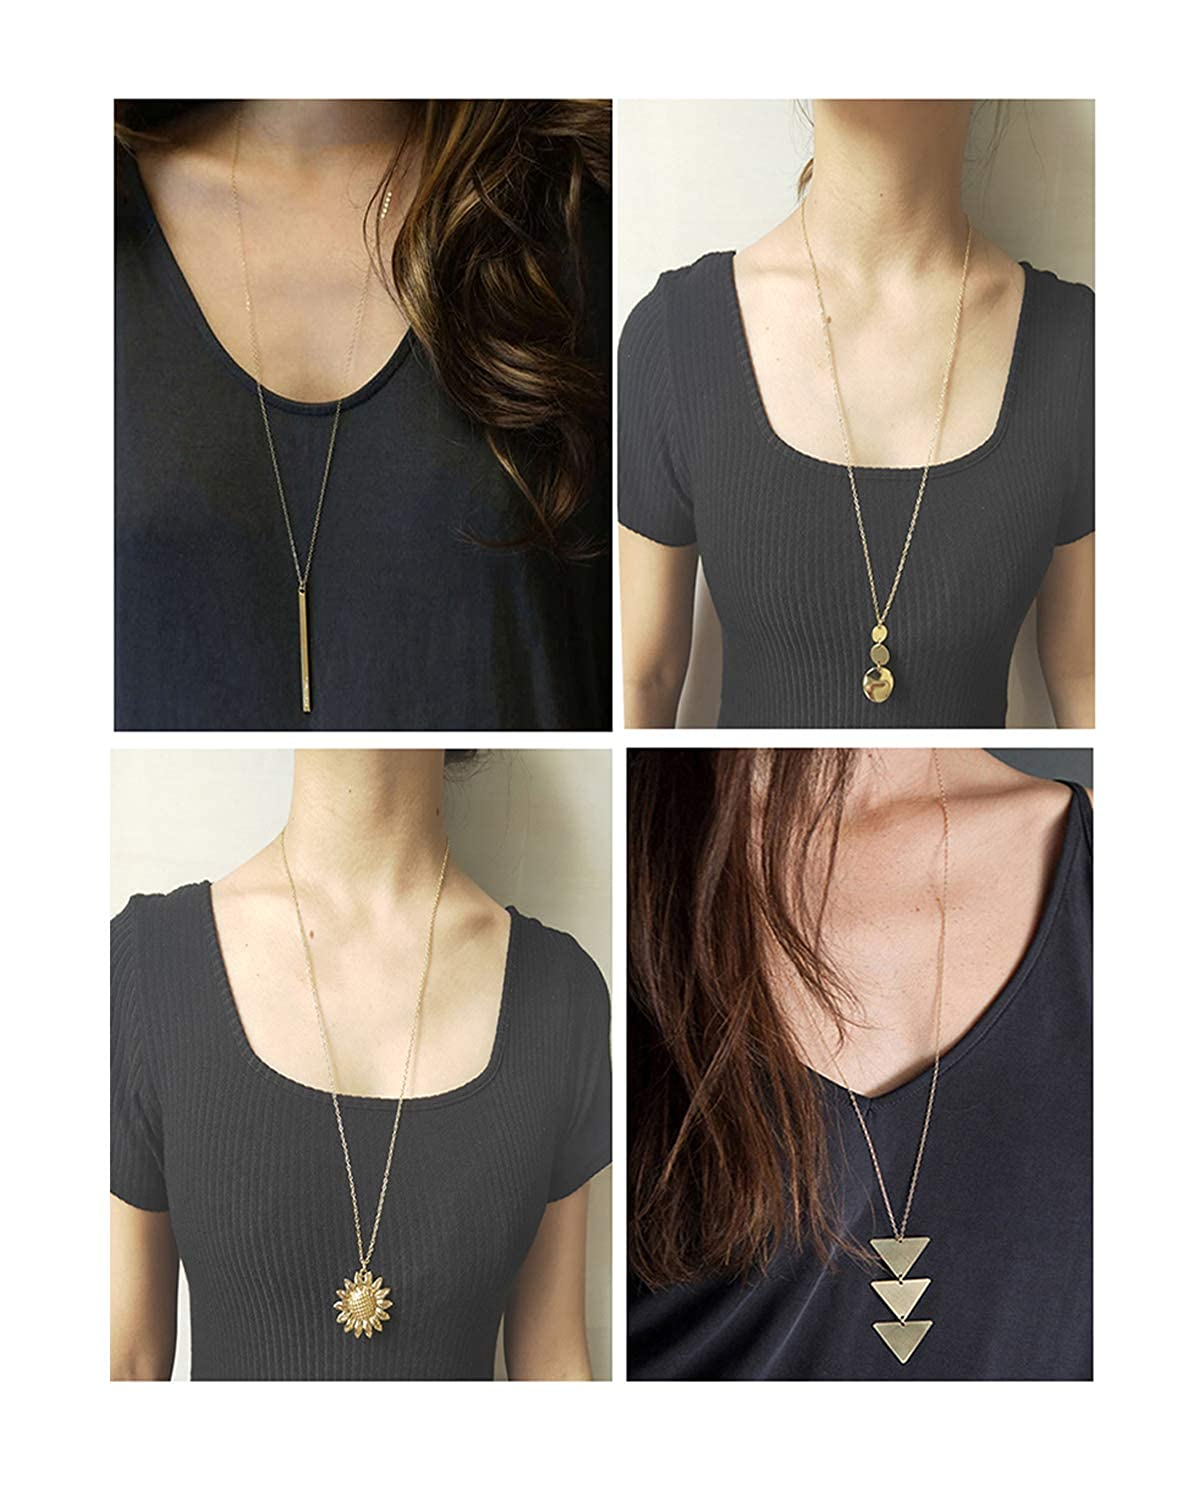 YANCHUN 2-4 Pieces Long Necklaces for Women Simple Bar Coin Disc Leaf Triangle Pendant Necklace Girls Jewelry Set